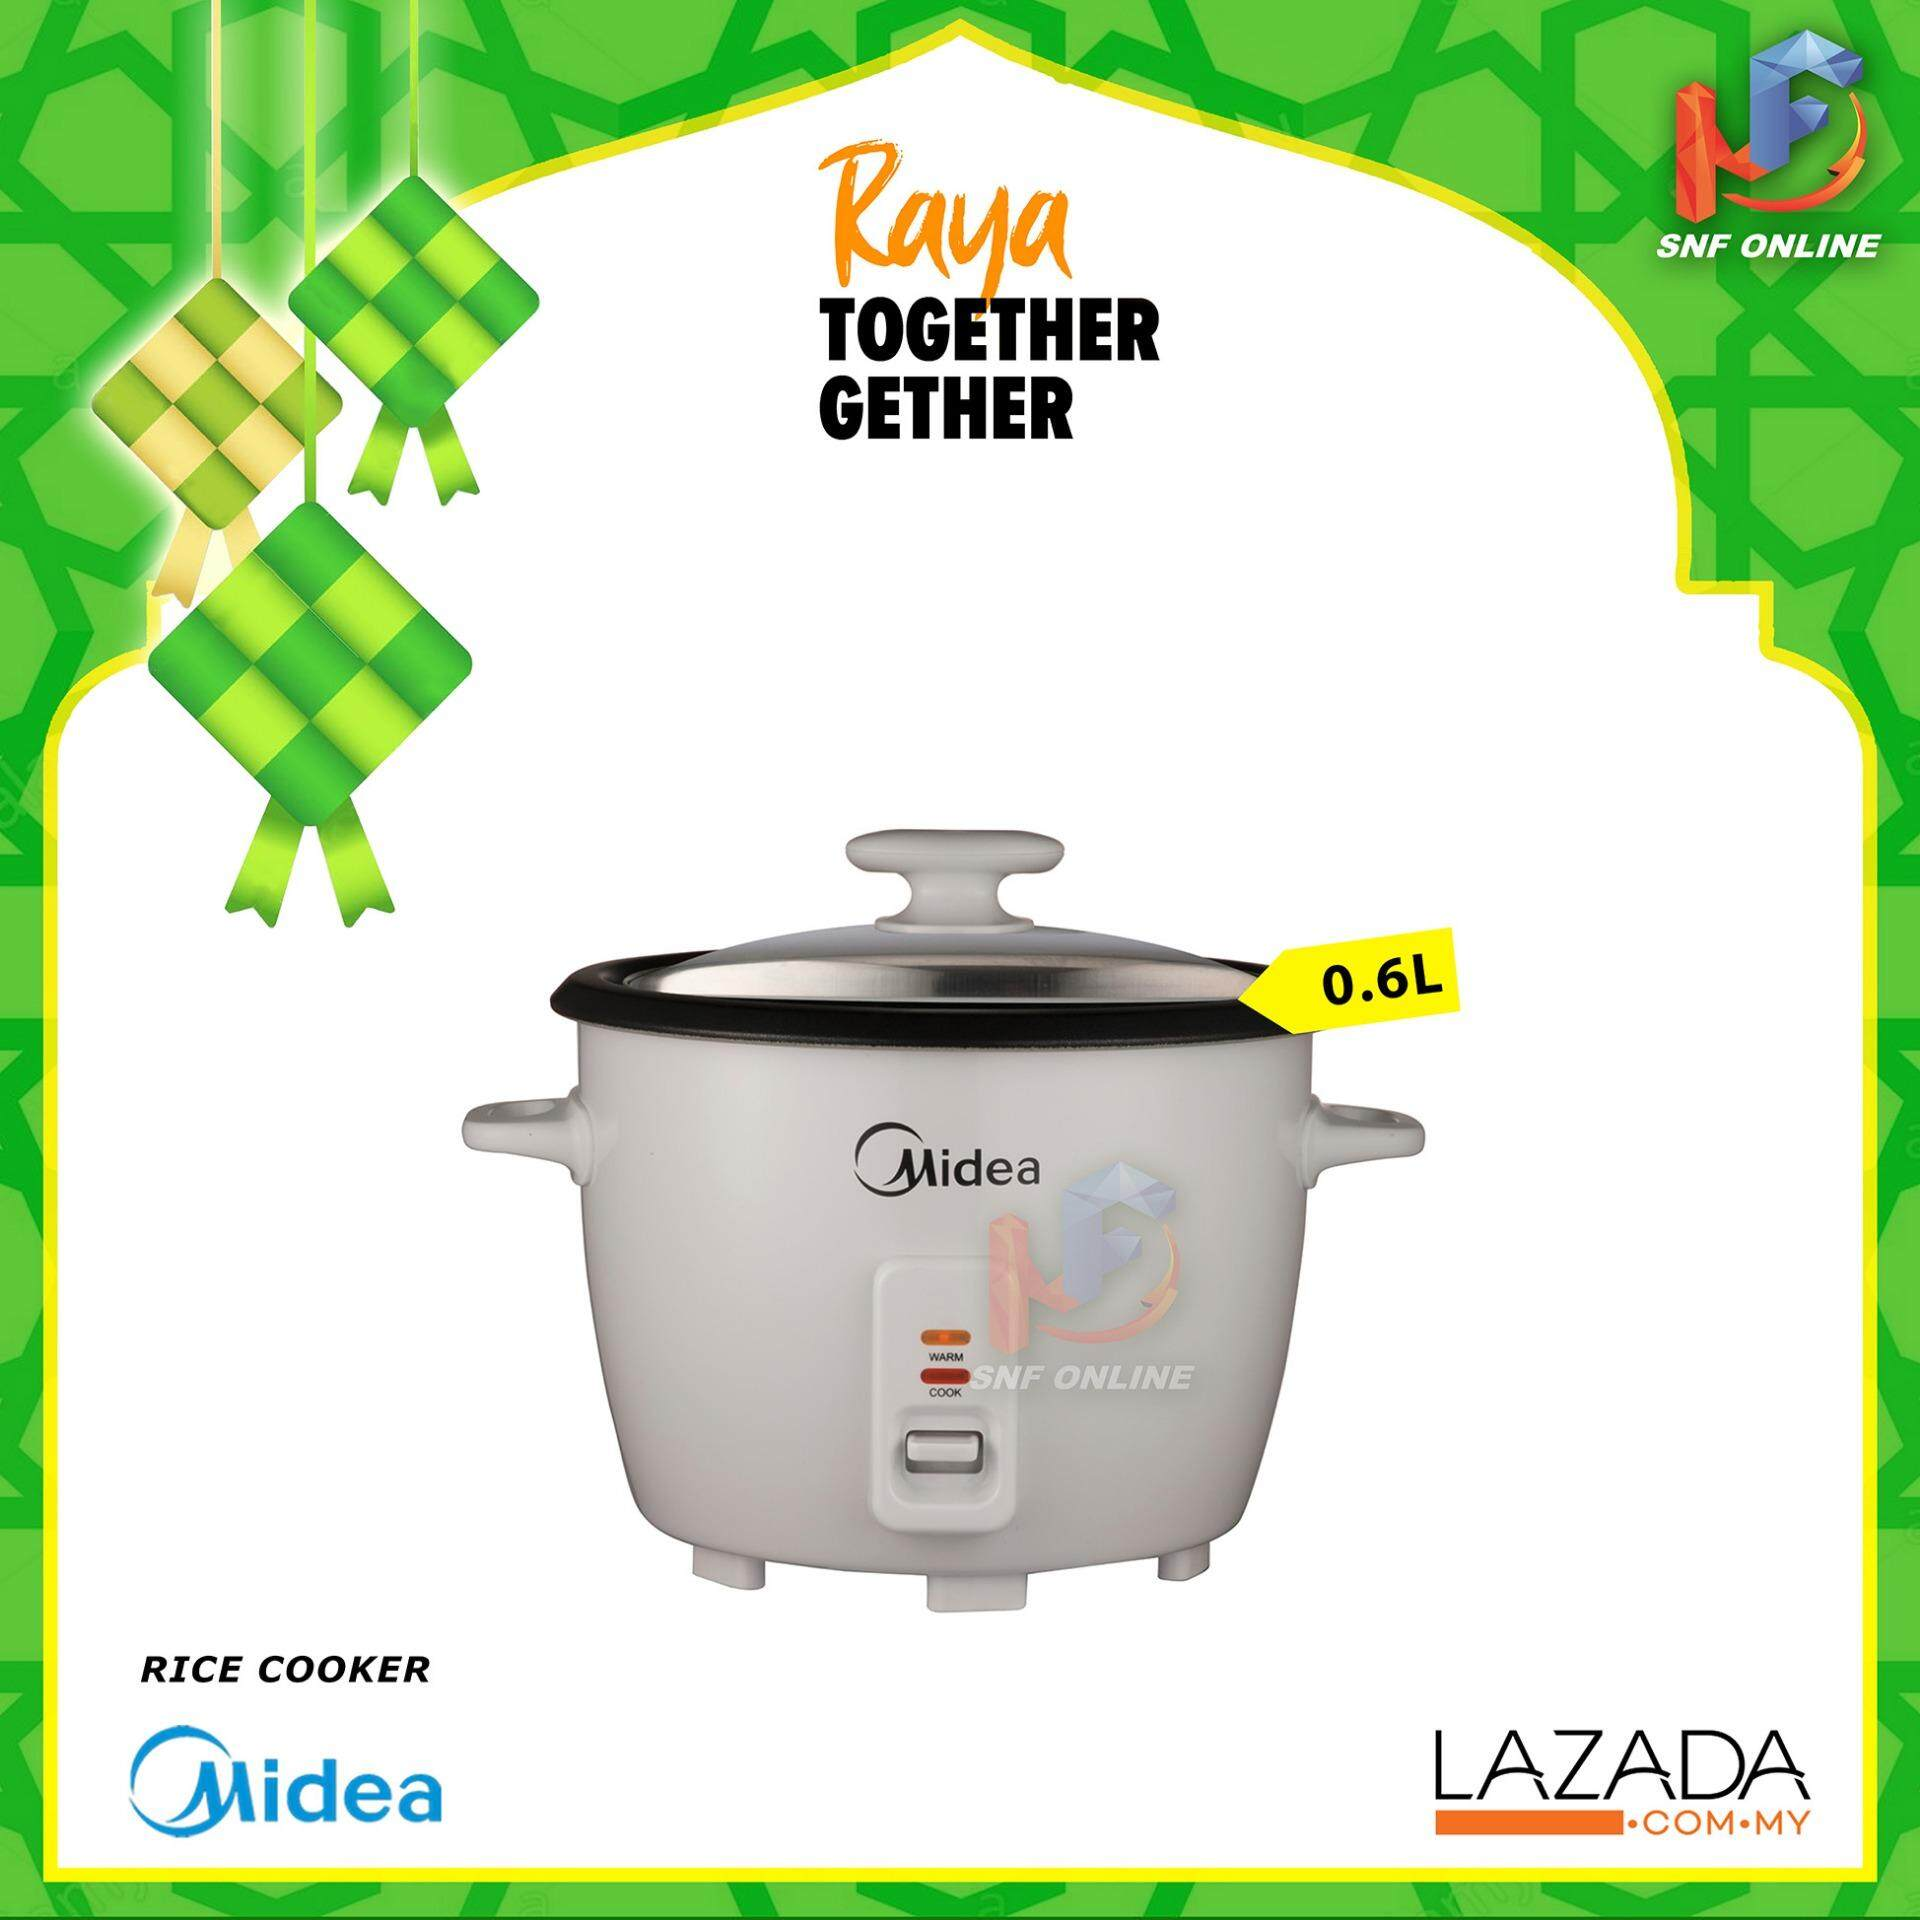 dabfdc2ee7b Rice Cookers - Buy Rice Cookers at Best Price in Malaysia